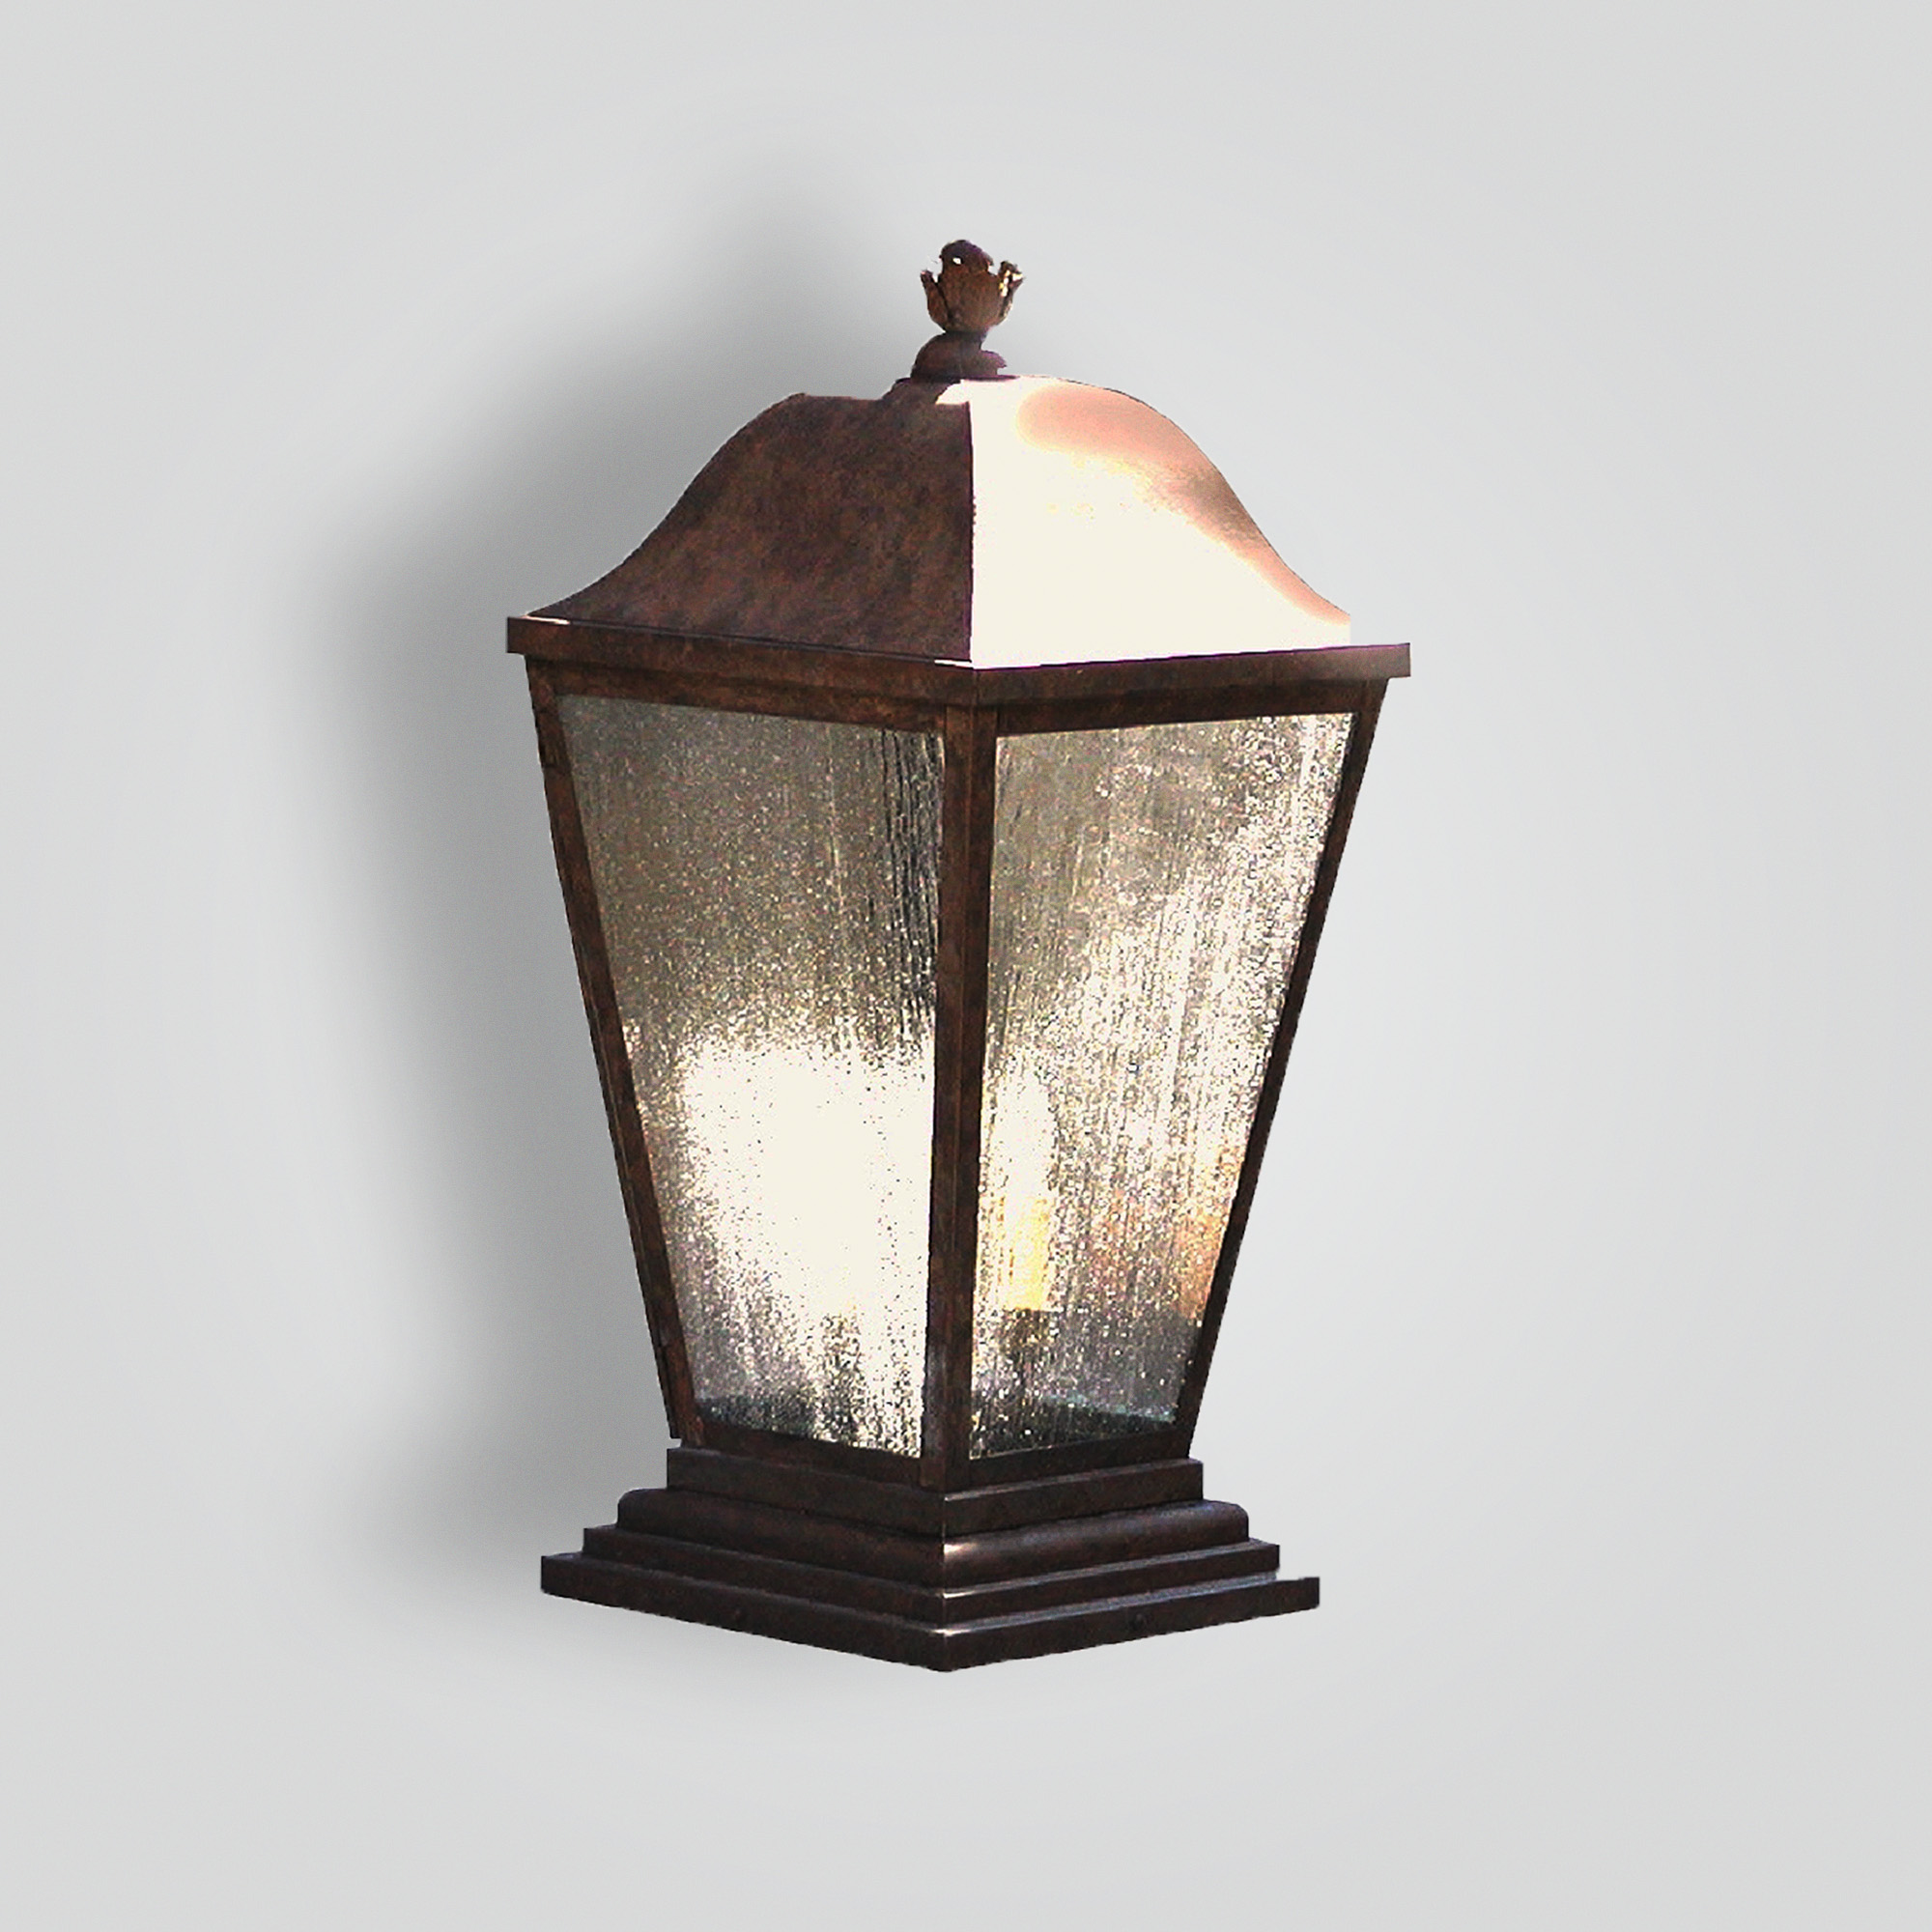 202-cb4-br-p-sh Traditional Pilaster – ADG Lighting Collection